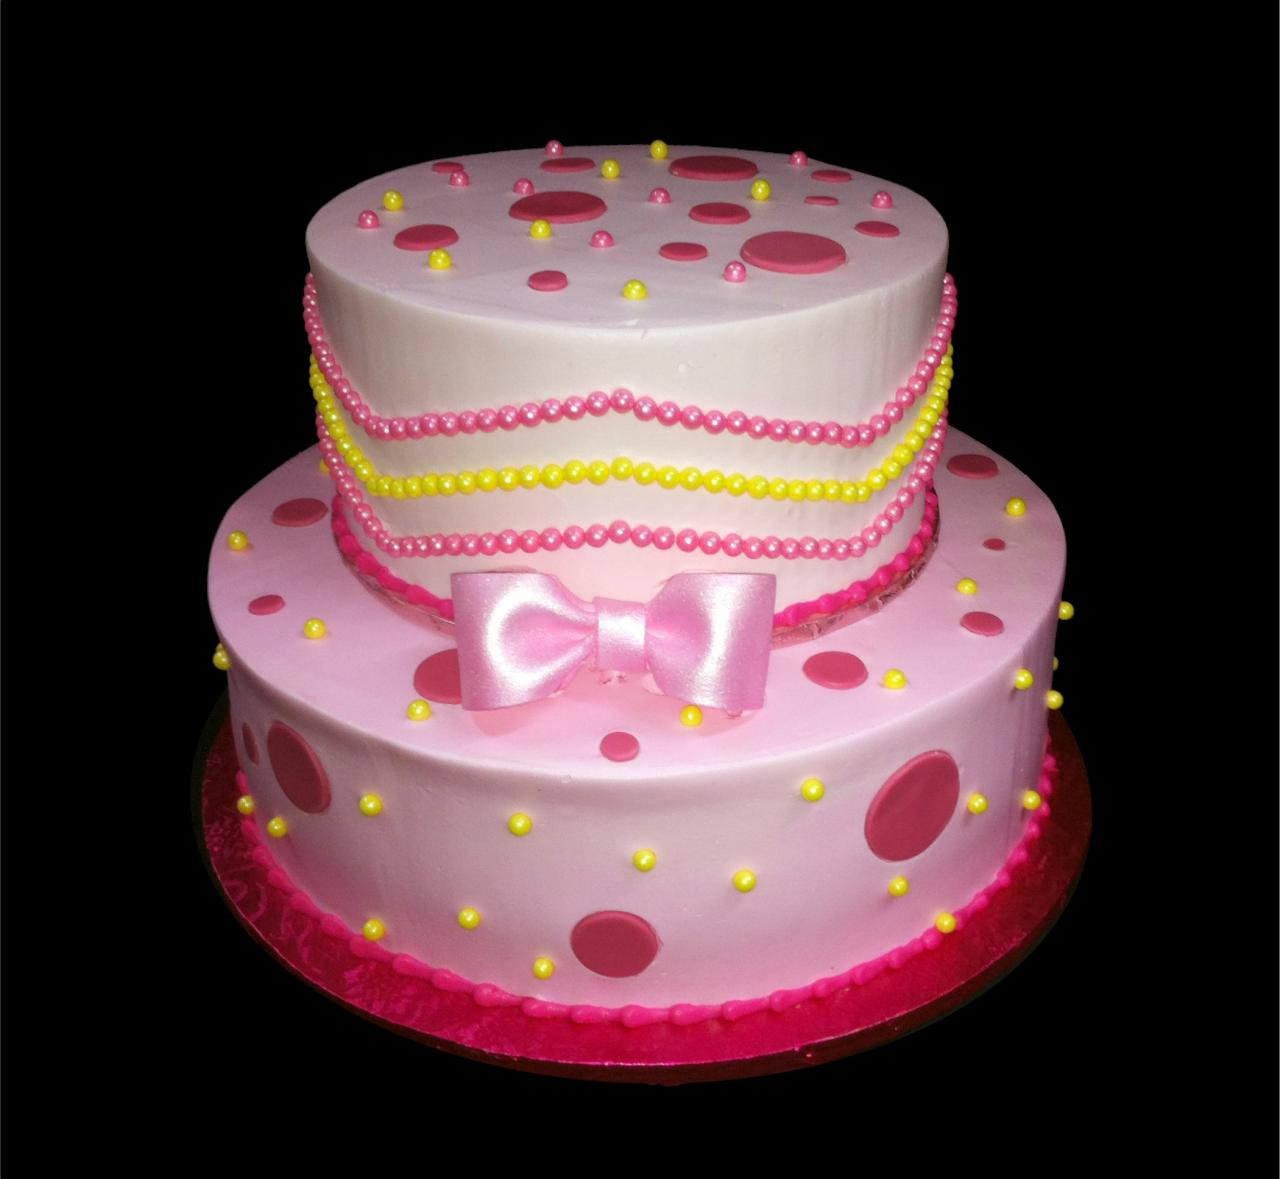 Pink Bowtie Birthday Cake Buttercream Iced 2 Round Tiers Decorated With Dots